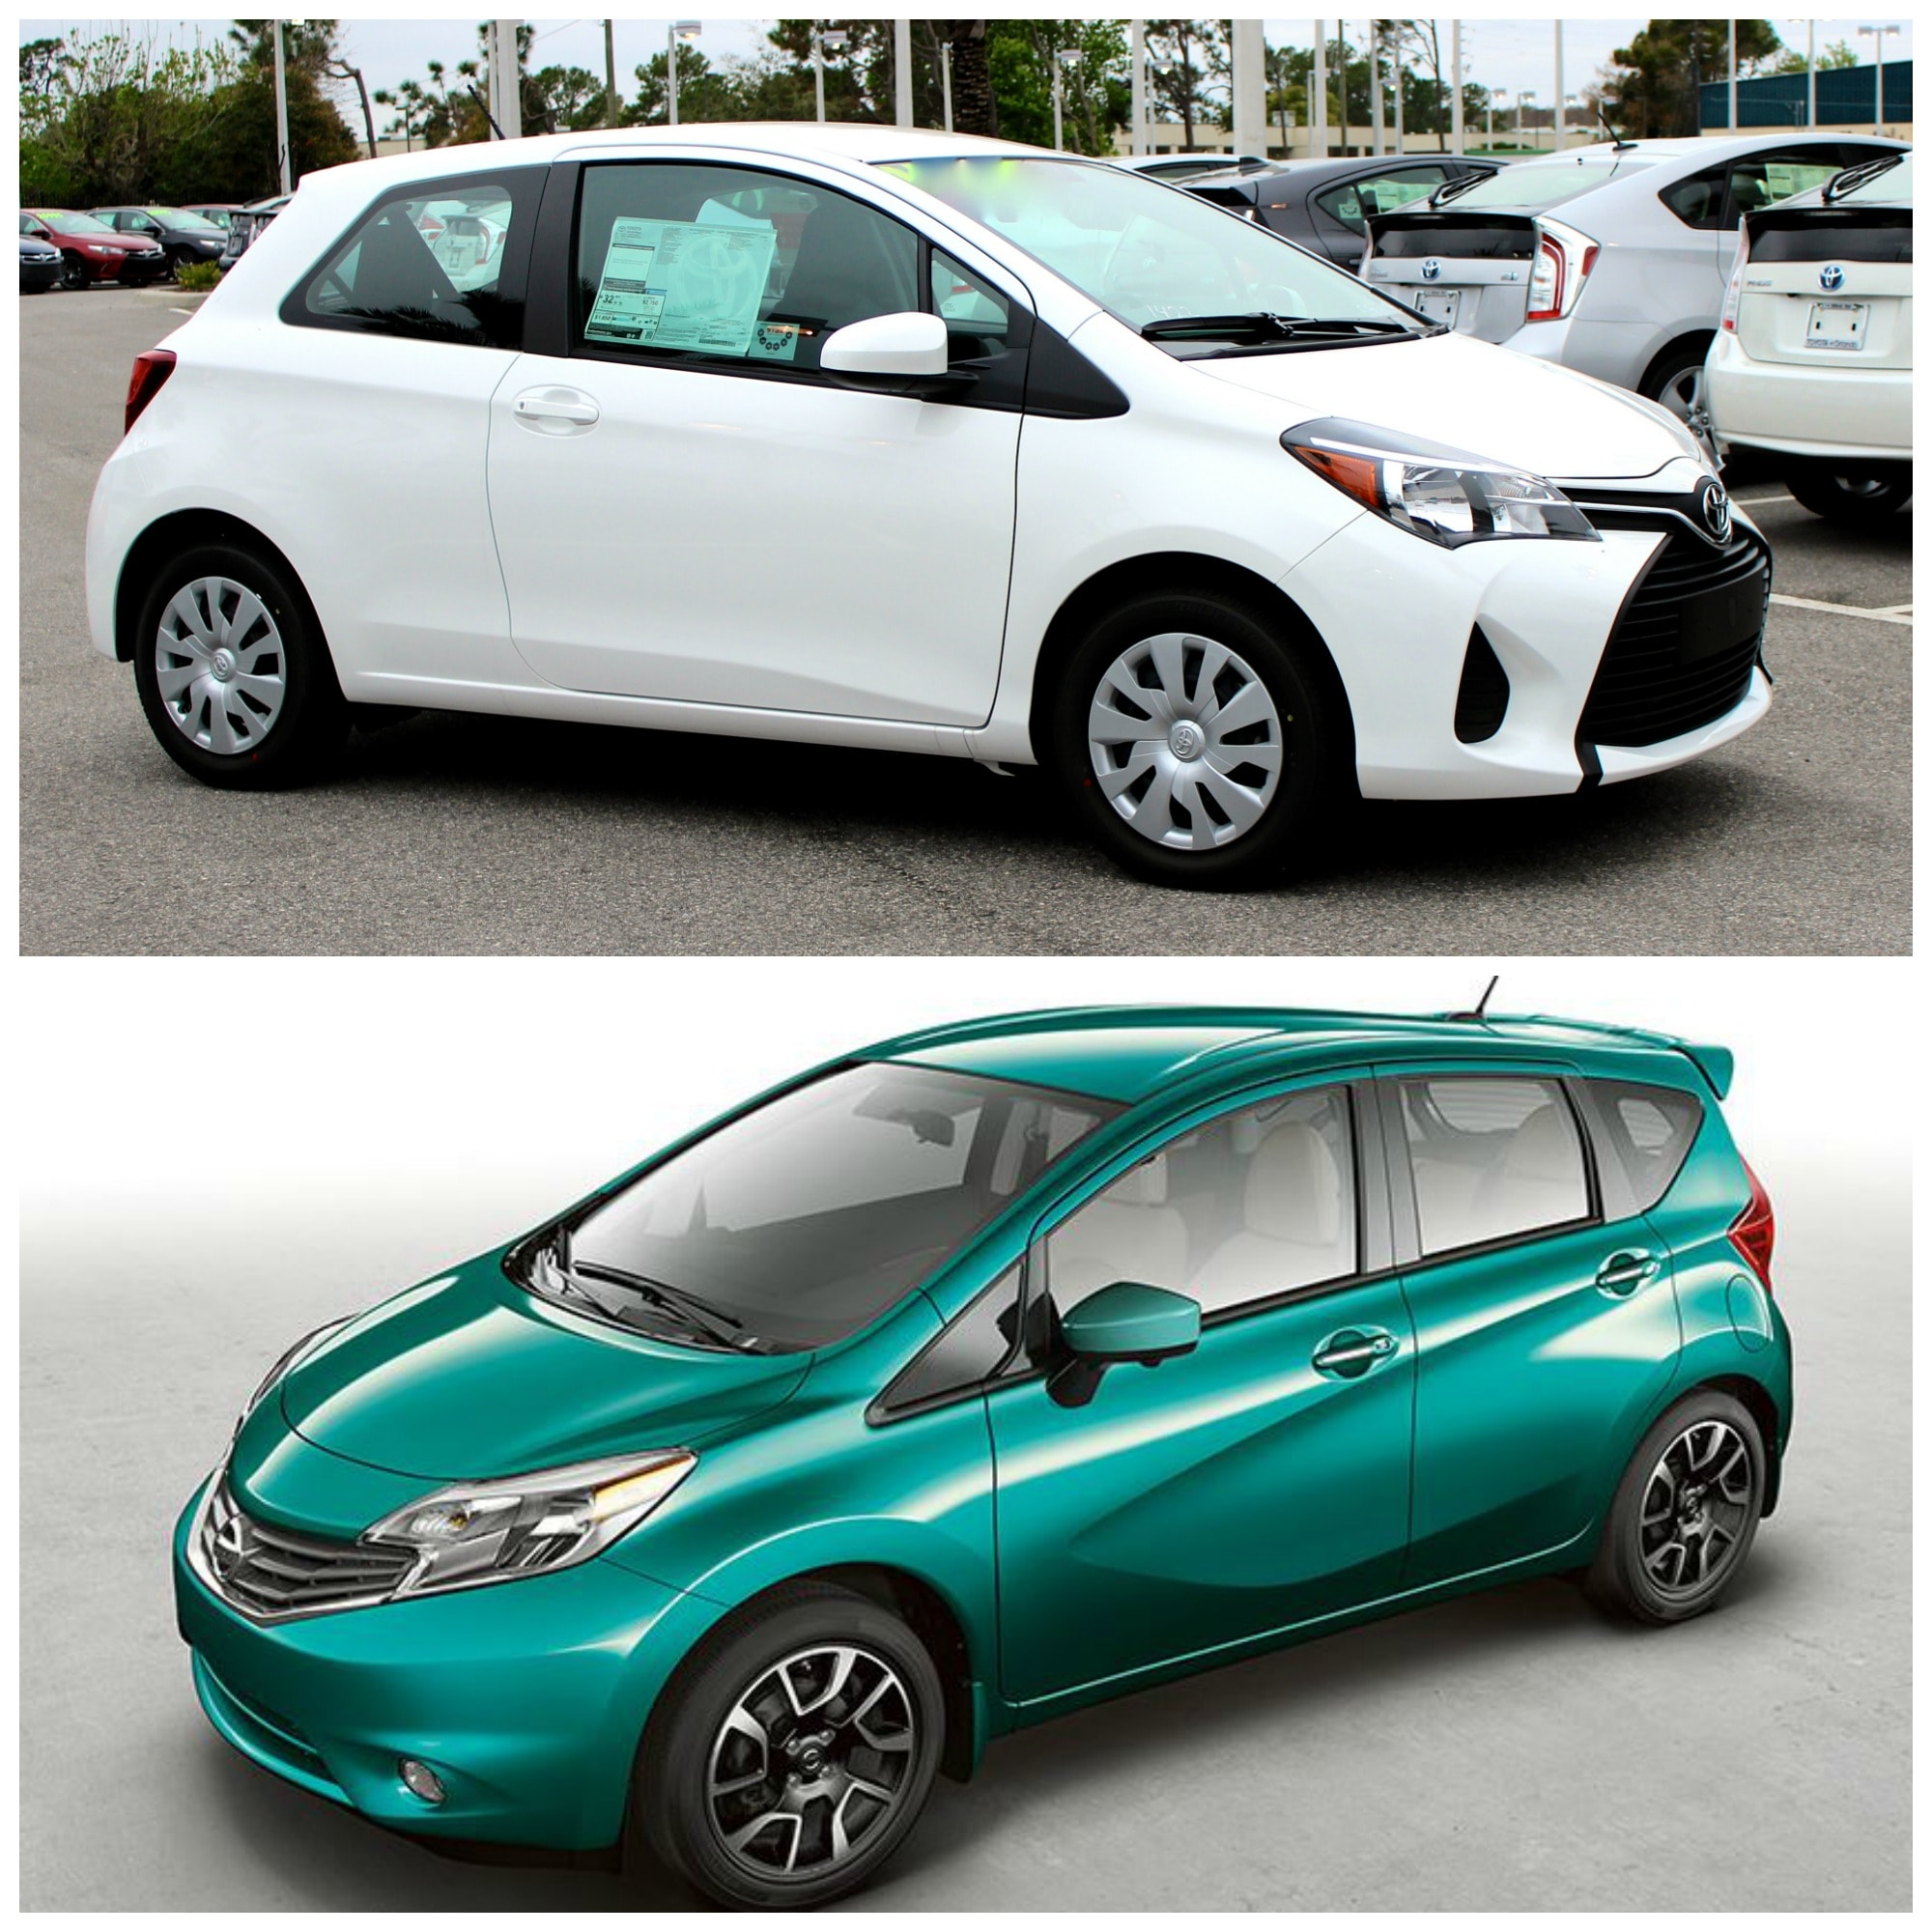 Ford Dealers In Orlando: 2016 Toyota Yaris Vs Nissan Versa